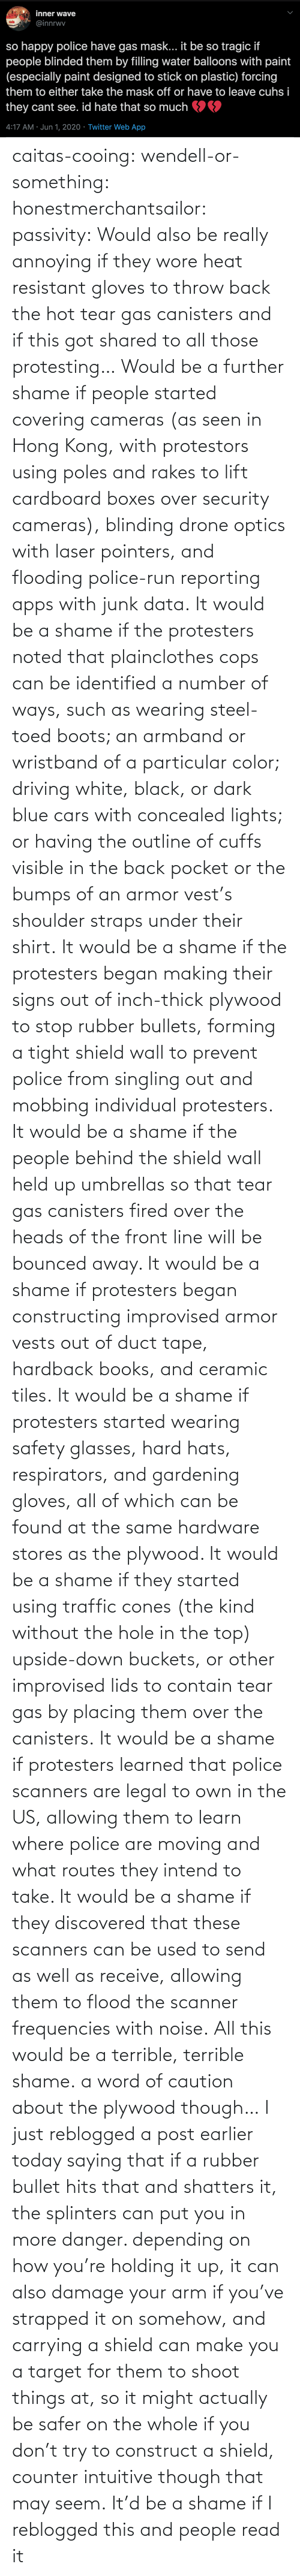 Would Be: caitas-cooing:  wendell-or-something: honestmerchantsailor:  passivity: Would also be really annoying if they wore heat resistant gloves to throw back the hot tear gas canisters and if this got shared to all those protesting… Would be a further shame if people started covering cameras (as seen in Hong Kong, with protestors using poles and rakes to lift cardboard boxes over security cameras), blinding drone optics with laser pointers, and flooding police-run reporting apps with junk data. It would be a shame if the protesters noted that plainclothes cops can be identified a number of ways, such as wearing steel-toed boots; an armband or wristband of a particular color; driving white, black, or dark blue cars with concealed lights; or having the outline of cuffs visible in the back pocket or the bumps of an armor vest's shoulder straps under their shirt. It would be a shame if the protesters began making their signs out of inch-thick plywood to stop rubber bullets, forming a tight shield wall to prevent police from singling out and mobbing individual protesters. It would be a shame if the people behind the shield wall held up umbrellas so that tear gas canisters fired over the heads of the front line will be bounced away. It would be a shame if protesters began constructing improvised armor vests out of duct tape, hardback books, and ceramic tiles. It would be a shame if protesters started wearing safety glasses, hard hats, respirators, and gardening gloves, all of which can be found at the same hardware stores as the plywood. It would be a shame if they started using traffic cones (the kind without the hole in the top) upside-down buckets, or other improvised lids to contain tear gas by placing them over the canisters. It would be a shame if protesters learned that police scanners are legal to own in the US, allowing them to learn where police are moving and what routes they intend to take. It would be a shame if they discovered that these scanners can be used to send as well as receive, allowing them to flood the scanner frequencies with noise. All this would be a terrible, terrible shame.    a word of caution about the plywood though… I just reblogged a post earlier today saying that if a rubber bullet hits that and shatters it, the splinters can put you in more danger. depending on how you're holding it up, it can also damage your arm if you've strapped it on somehow, and carrying a shield can make you a target for them to shoot things at, so it might actually be safer on the whole if you don't try to construct a shield, counter intuitive though that may seem.    It'd be a shame if I reblogged this and people read it